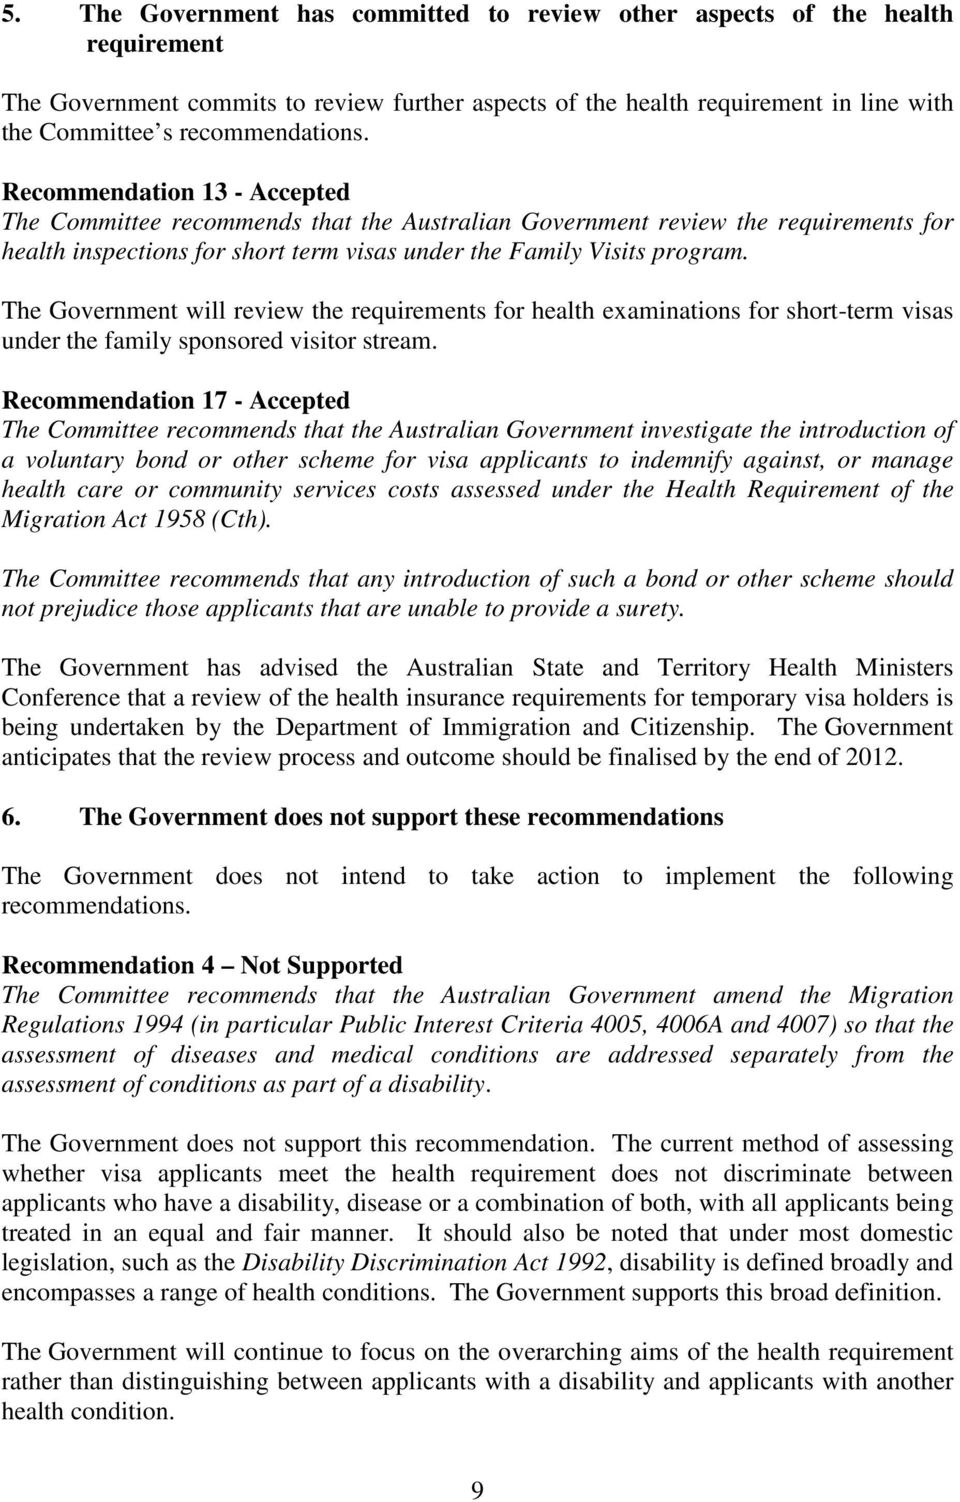 Recommendation 13 - Accepted The Committee recommends that the Australian Government review the requirements for health inspections for short term visas under the Family Visits program.